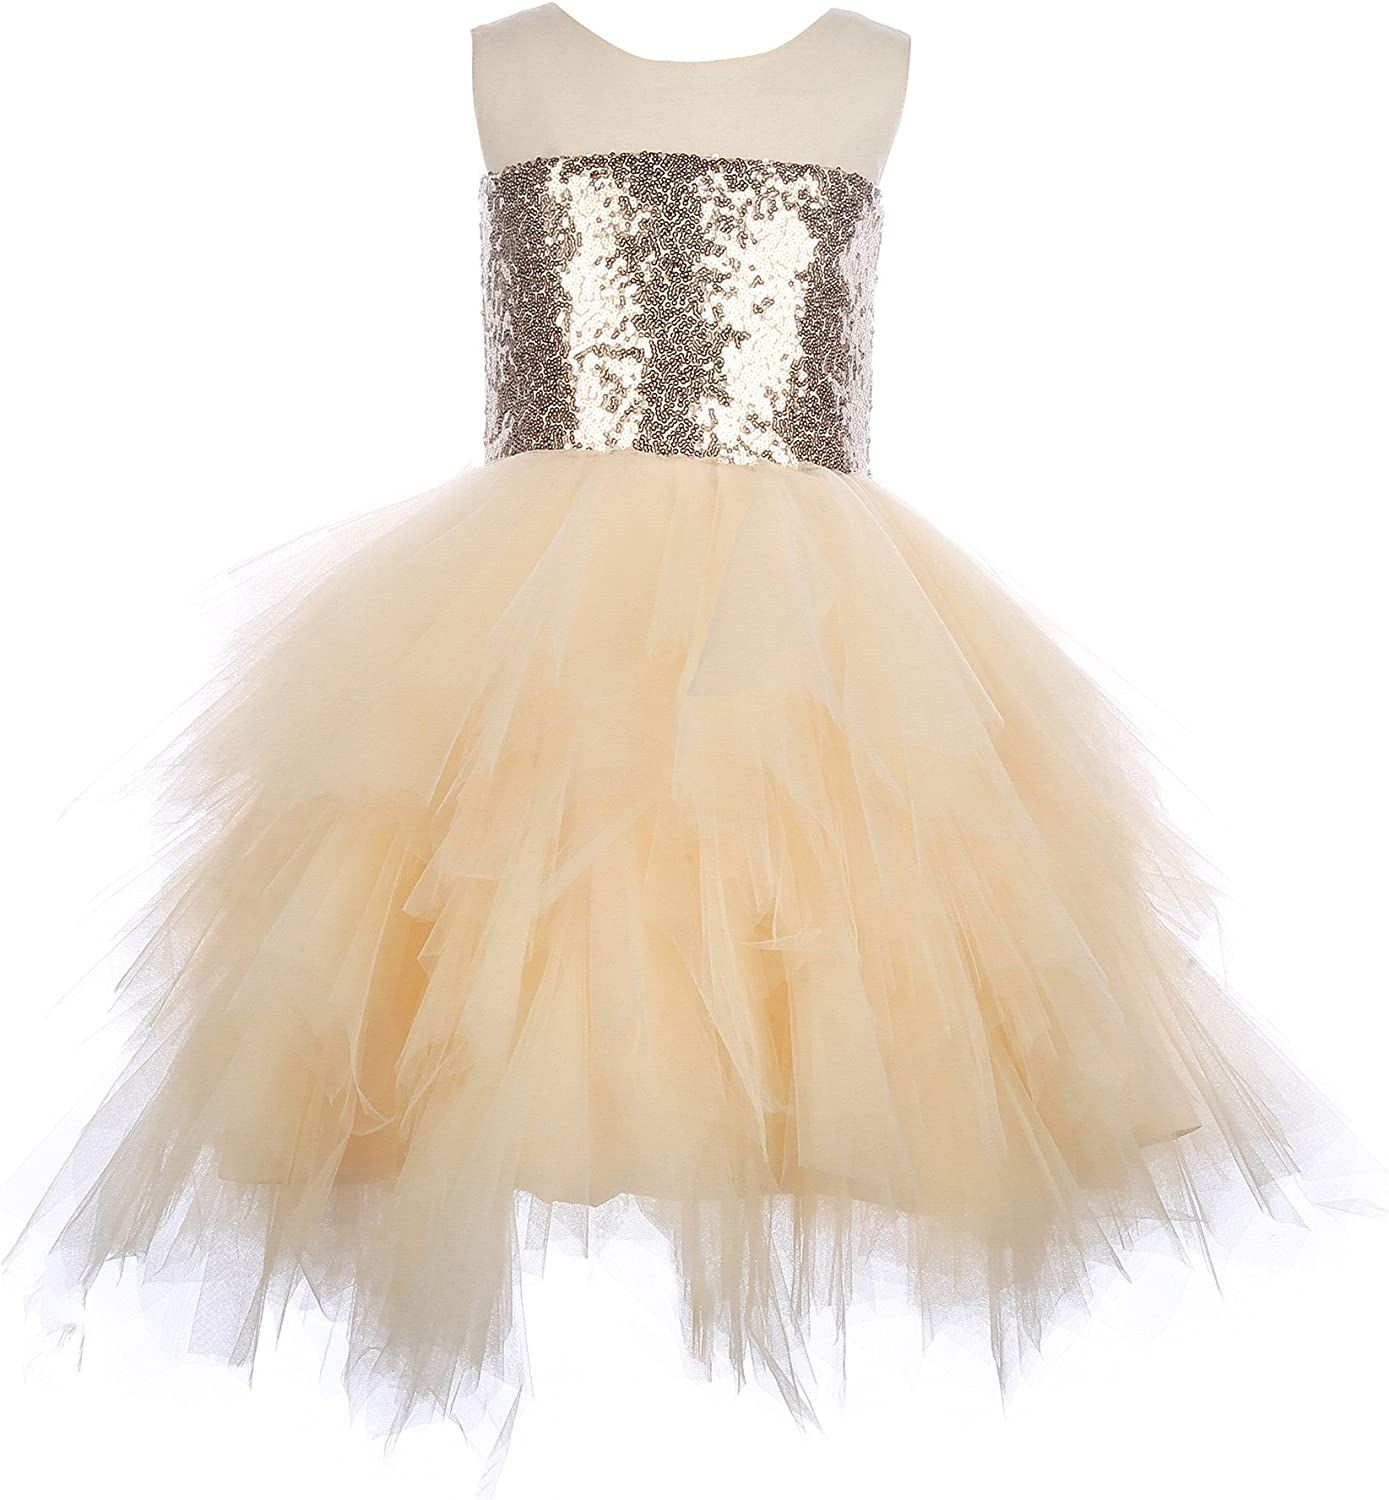 Mrprettys Champagne Sequin Tullee Flower Girl Dresses Special Occasion Dress